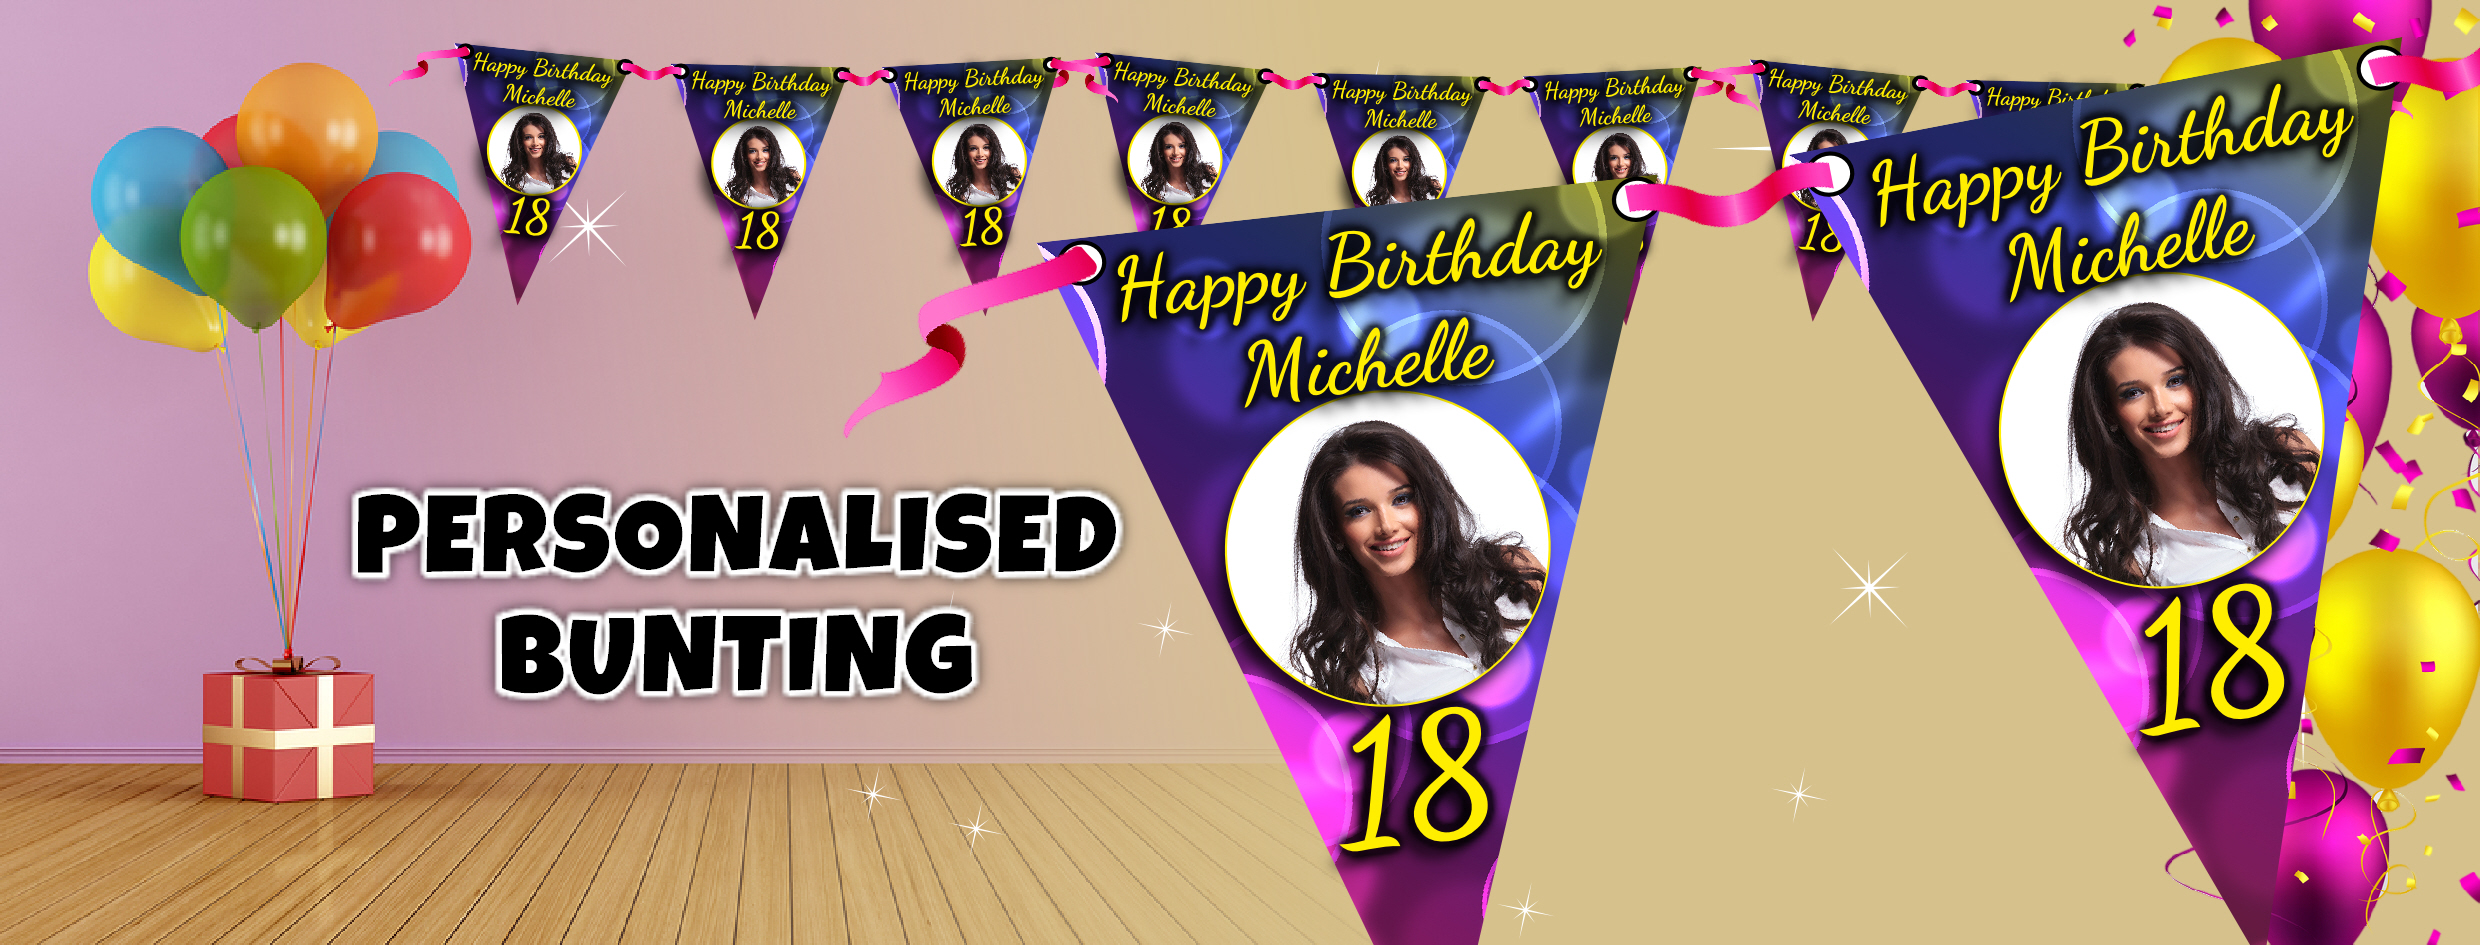 personalised birthday banners with photos ; banner-bunting-banners